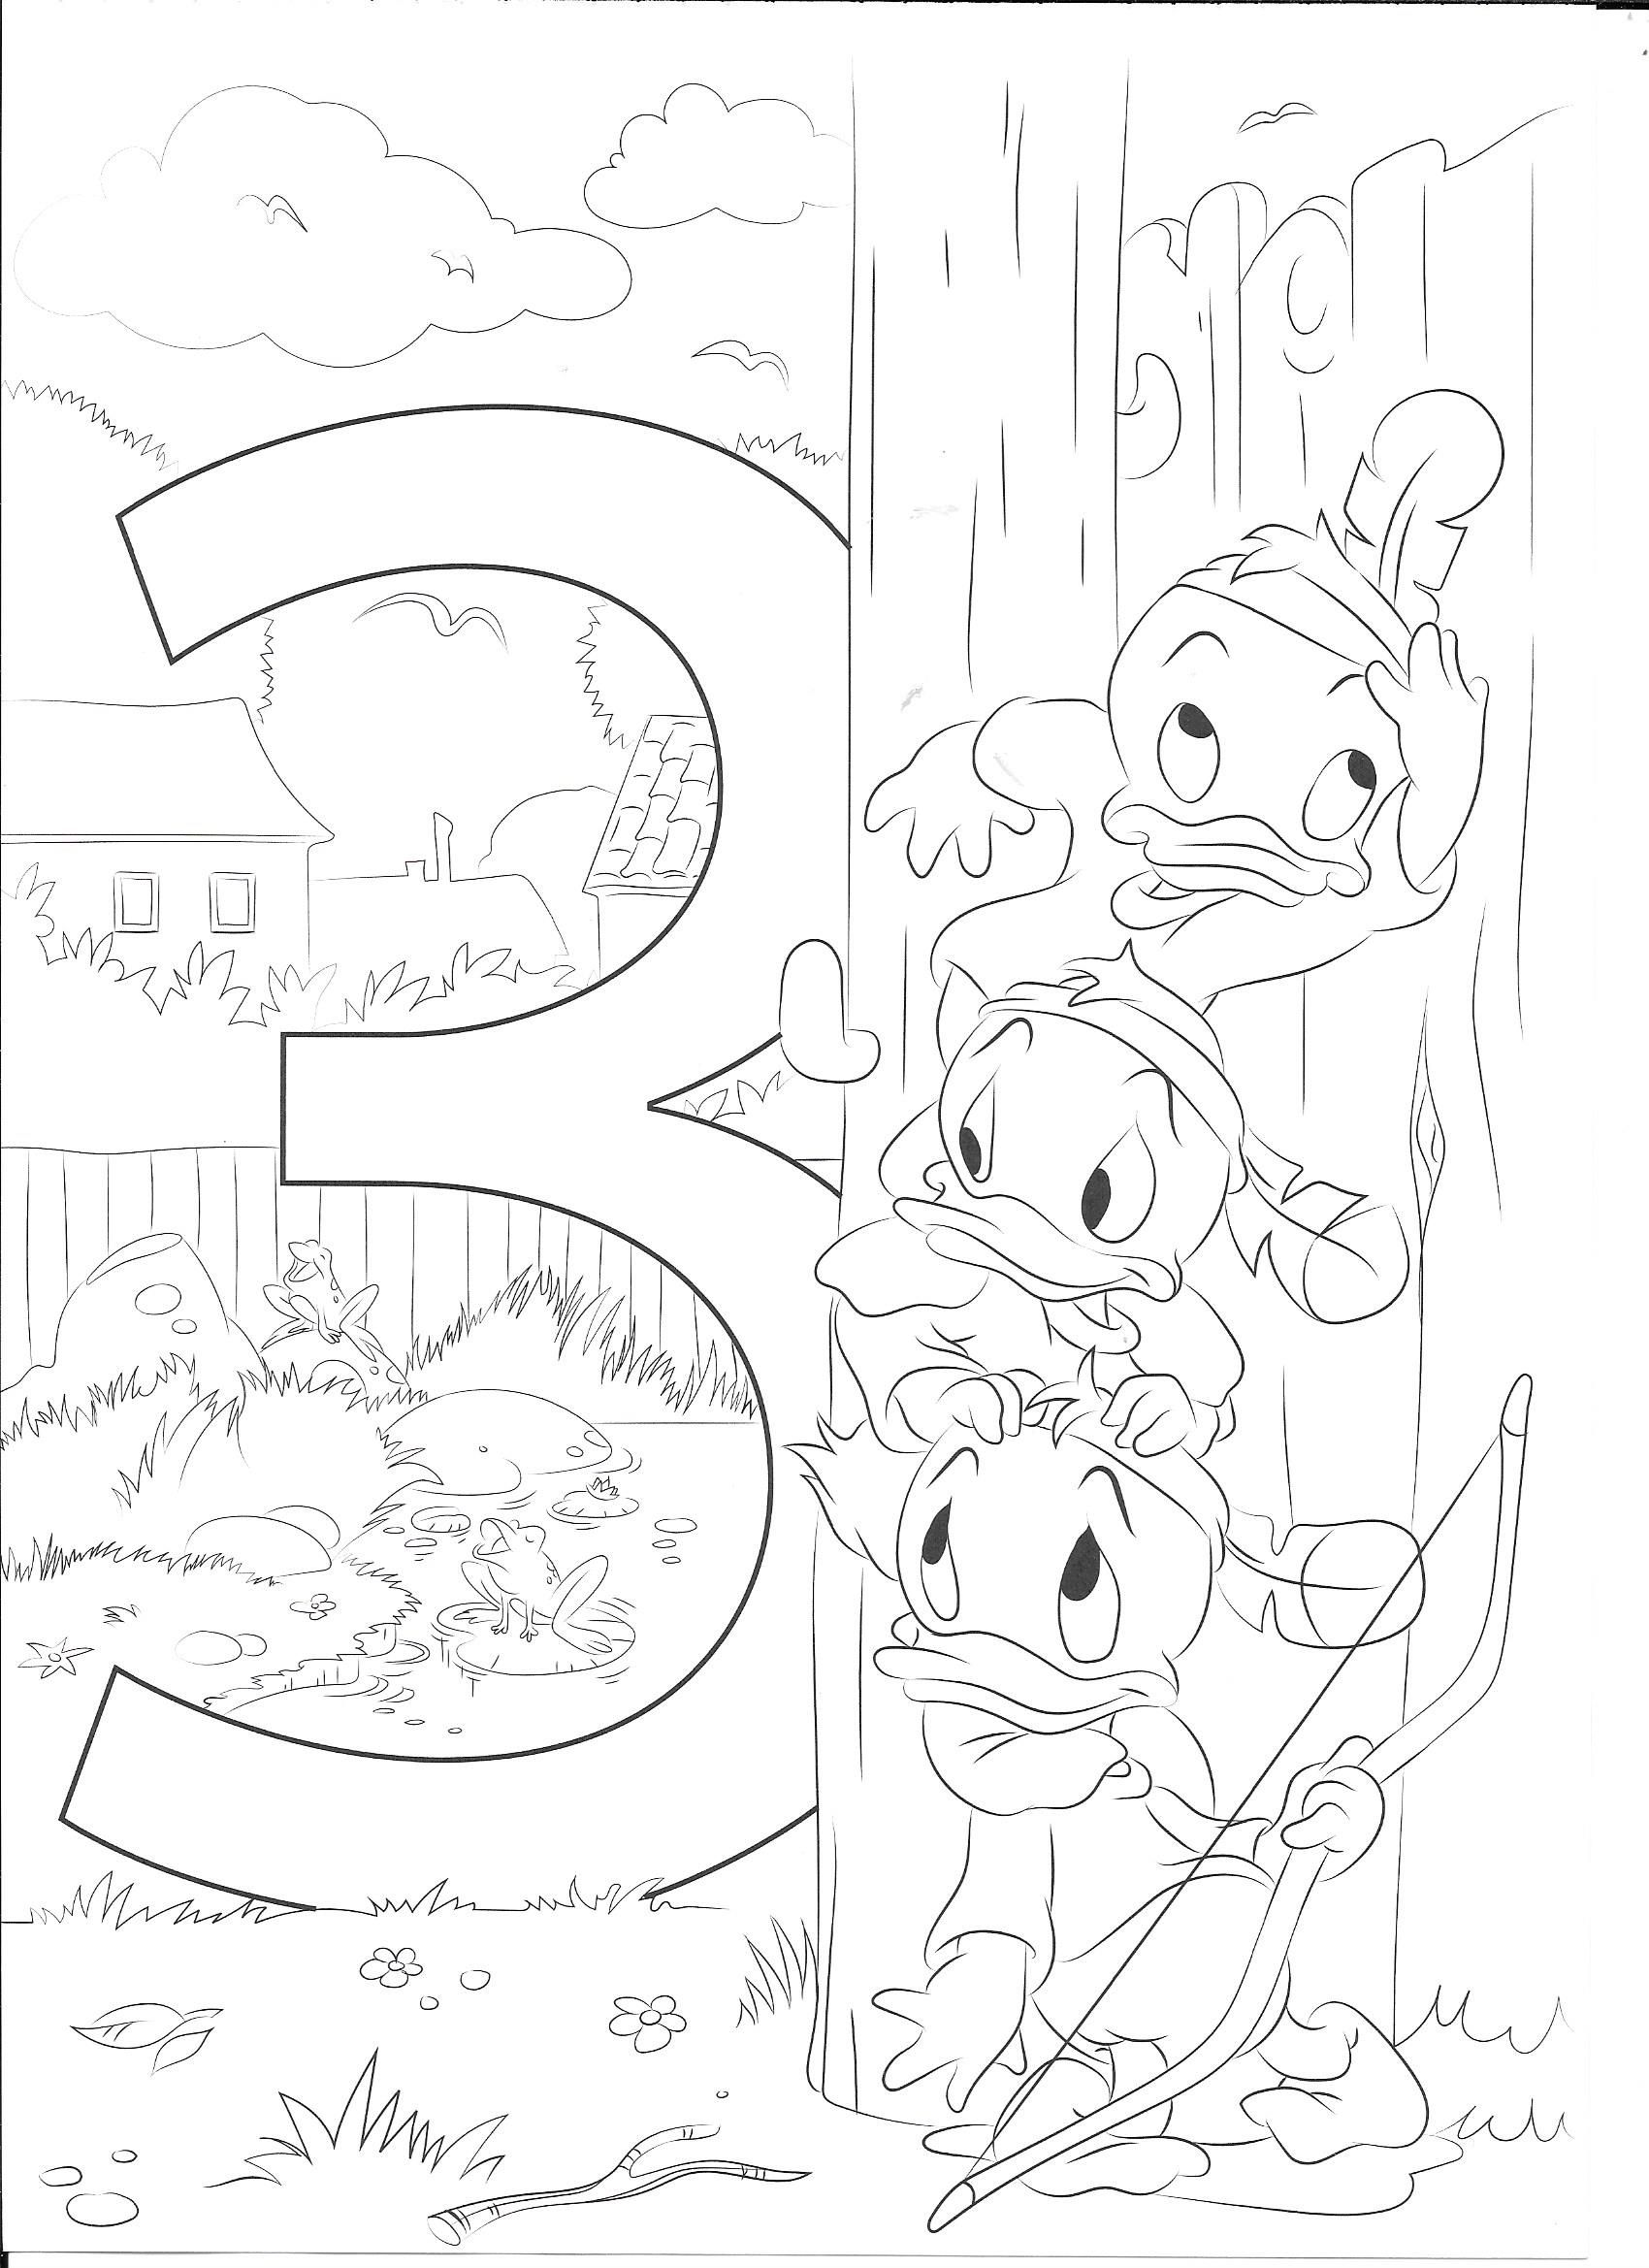 Pin By Janell Lauderdale On Disney Abc Coloring Pages Disney Alphabet Coloring Pages